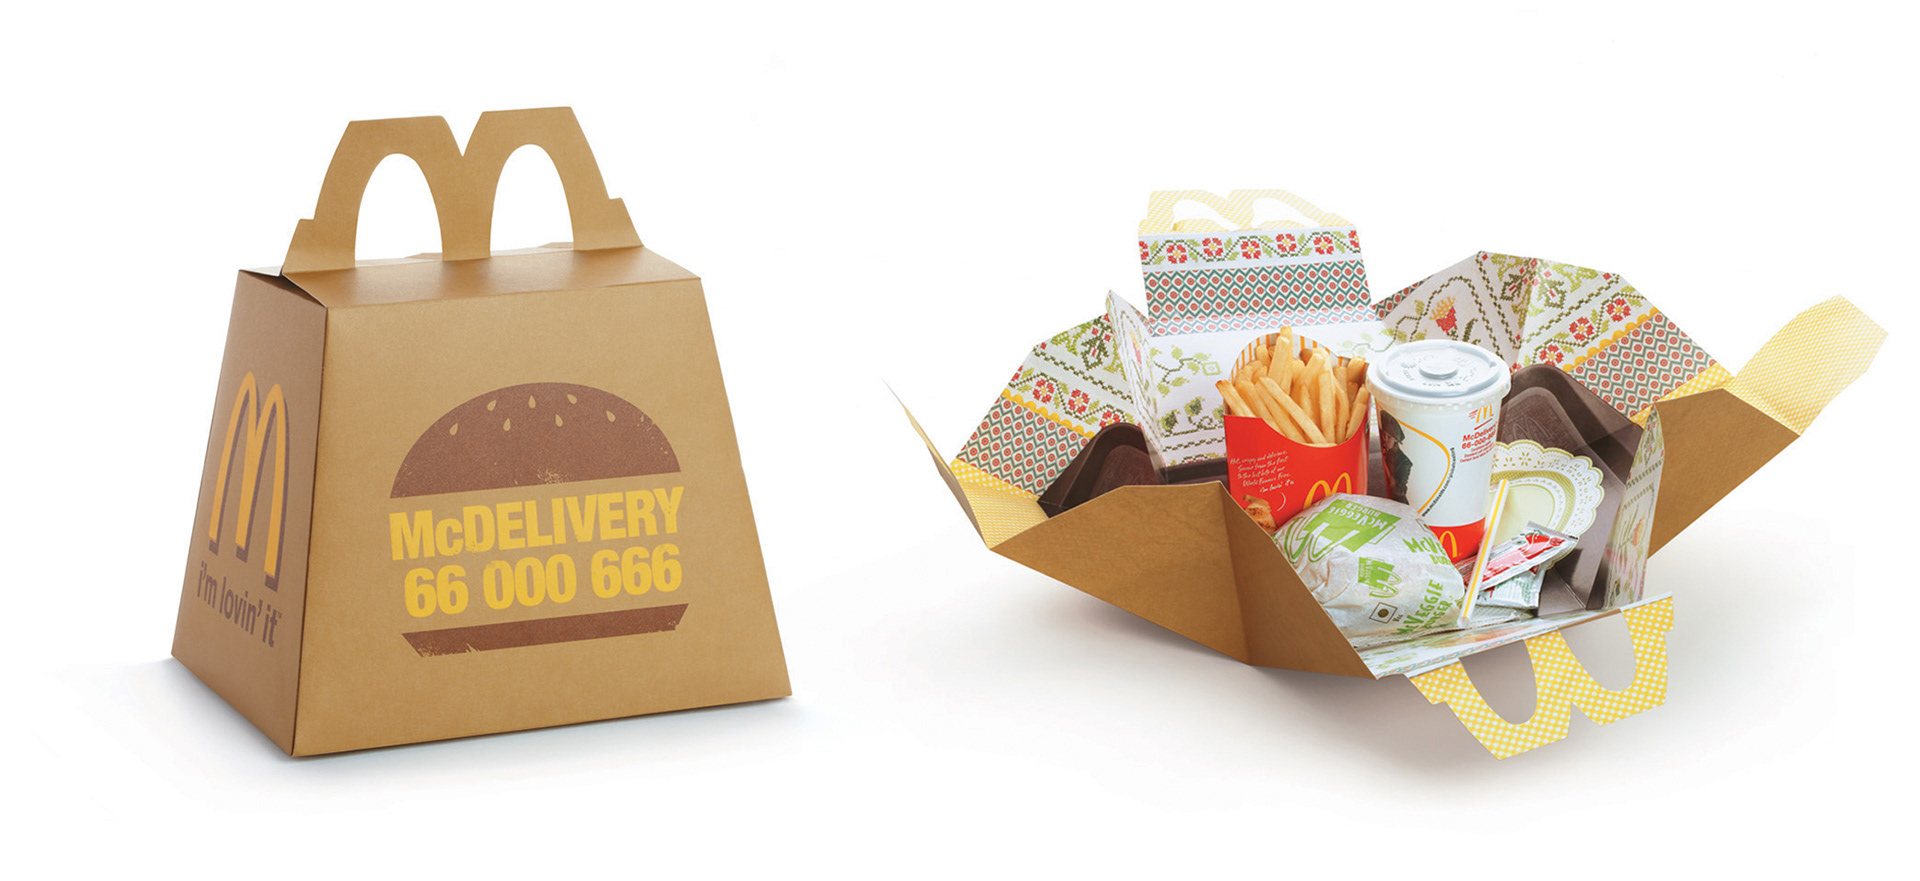 fast food paper Criticism of fast food includes claimed negative health effects, alleged animal cruelty, cases of worker exploitation, and claims of cultural degradation via shifts in people's eating patterns away from traditional foods.